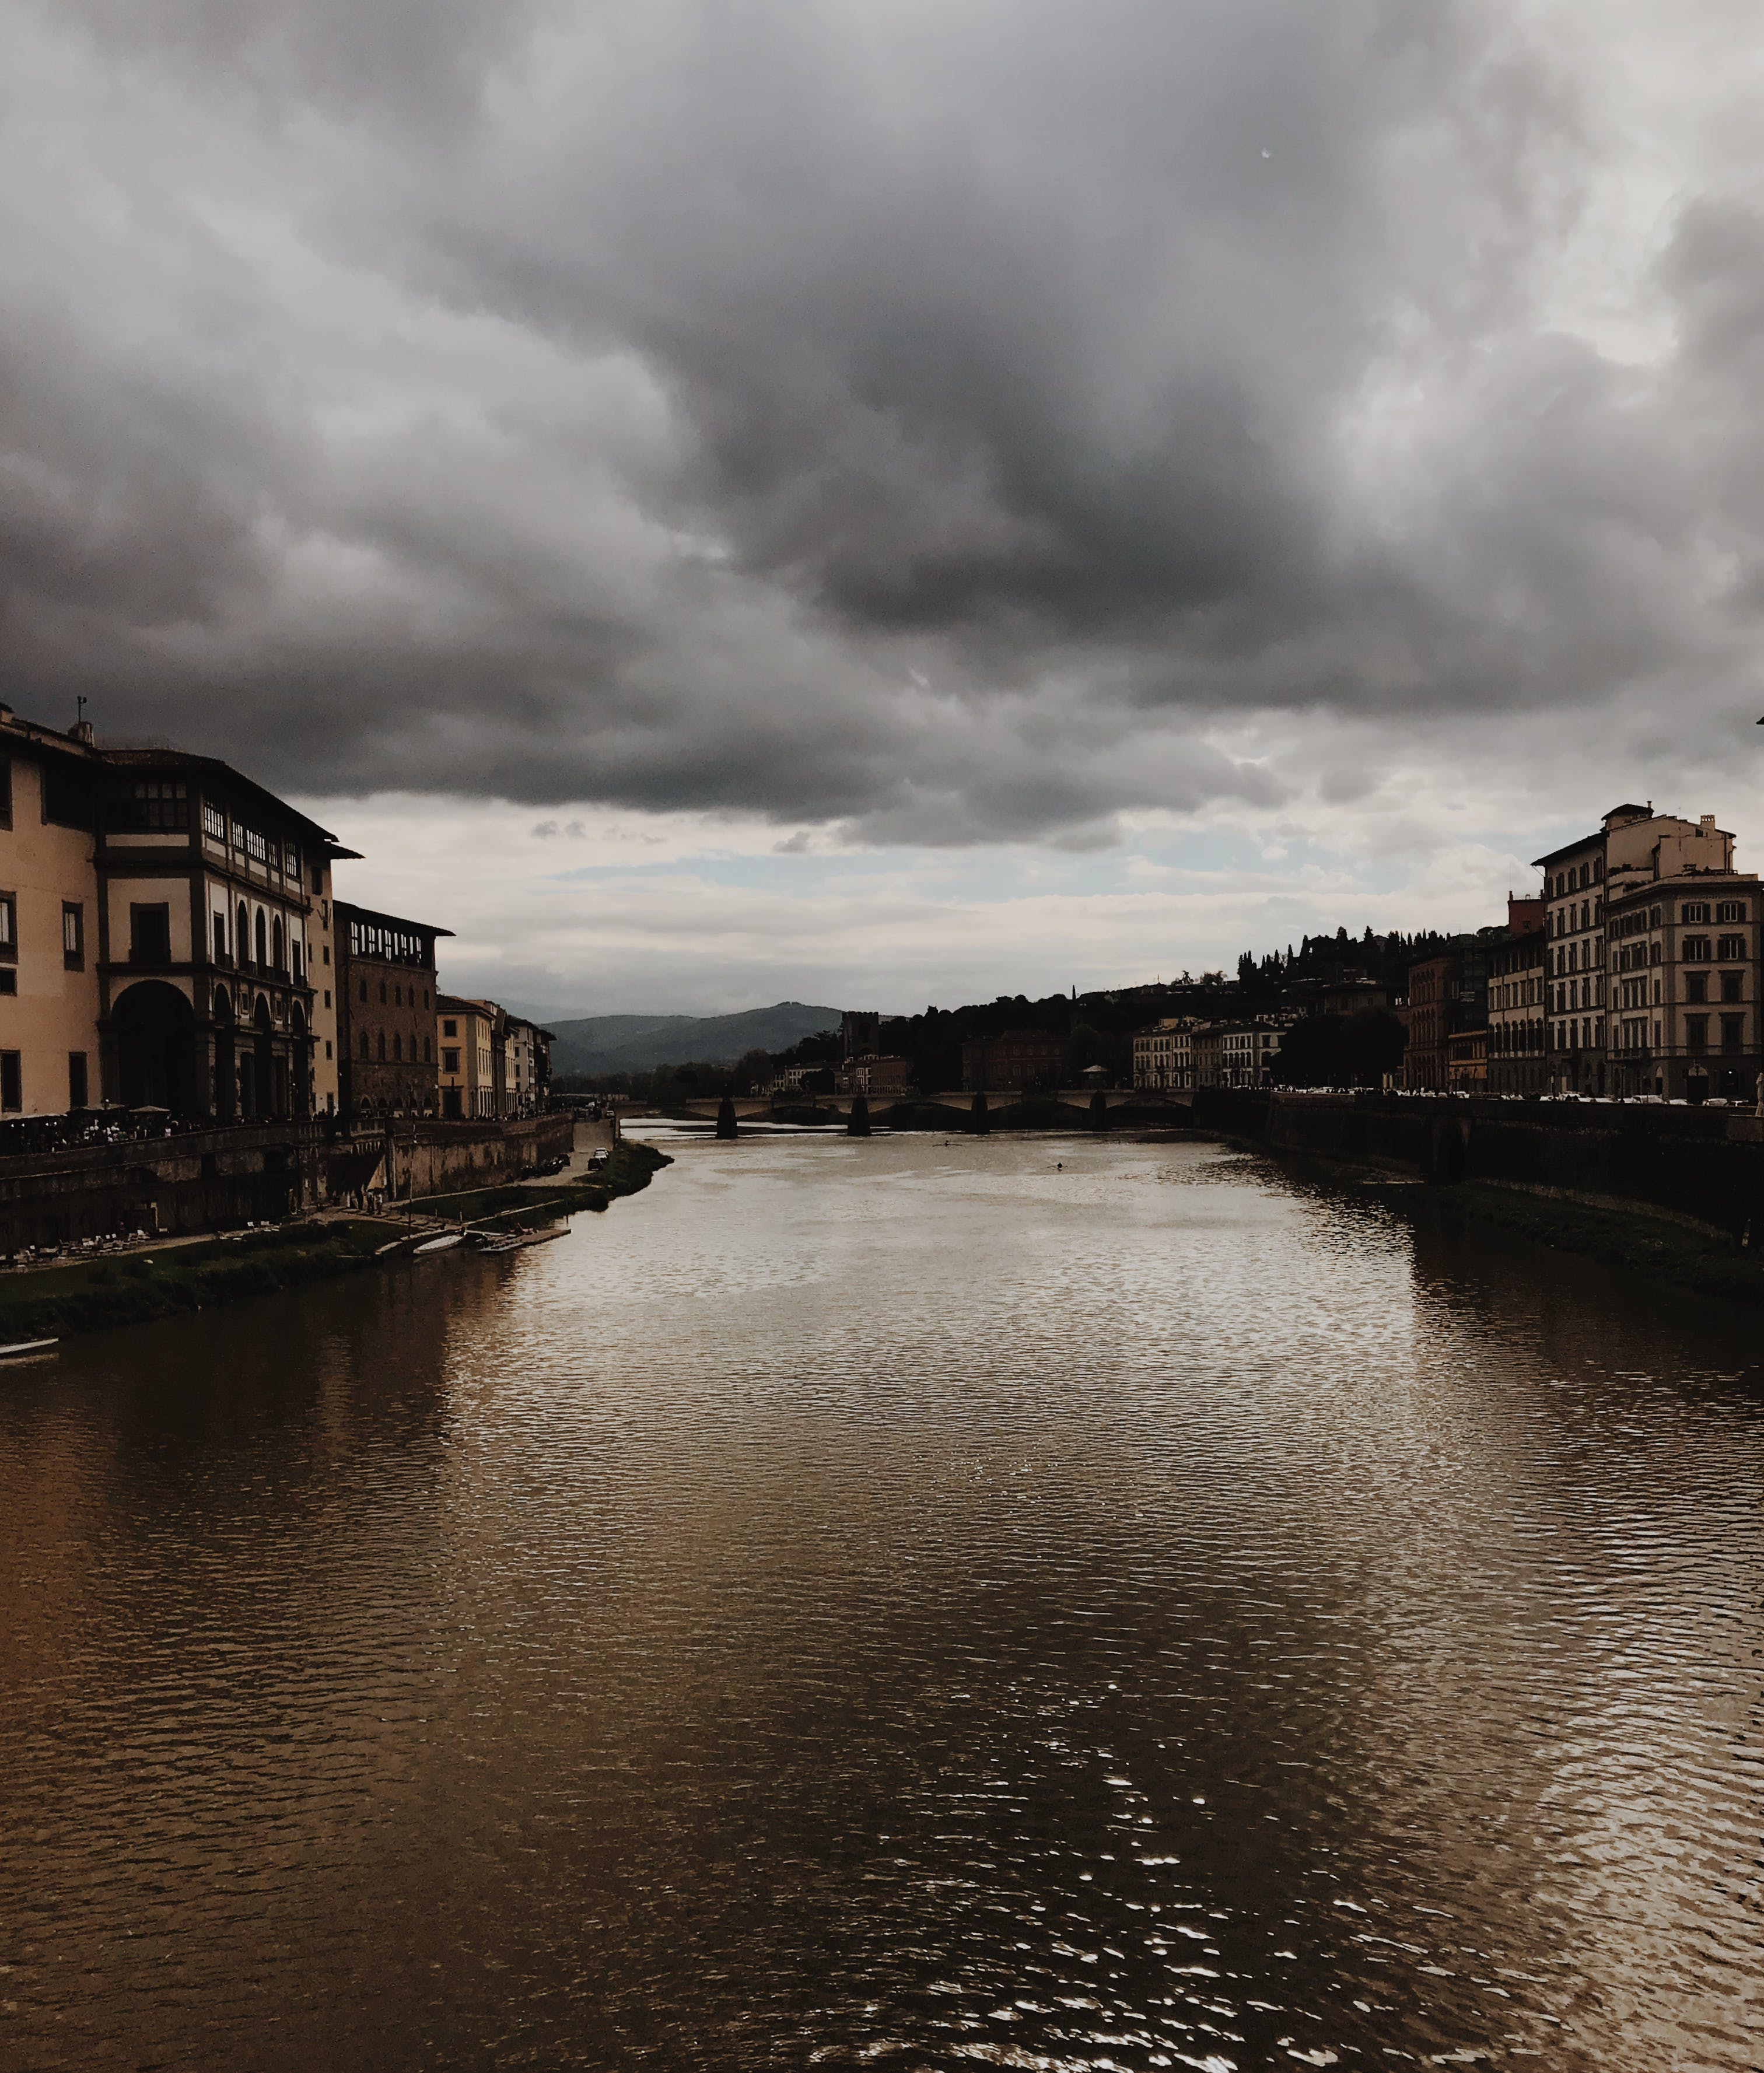 Free stock photo of cloudy, europe, moody, river